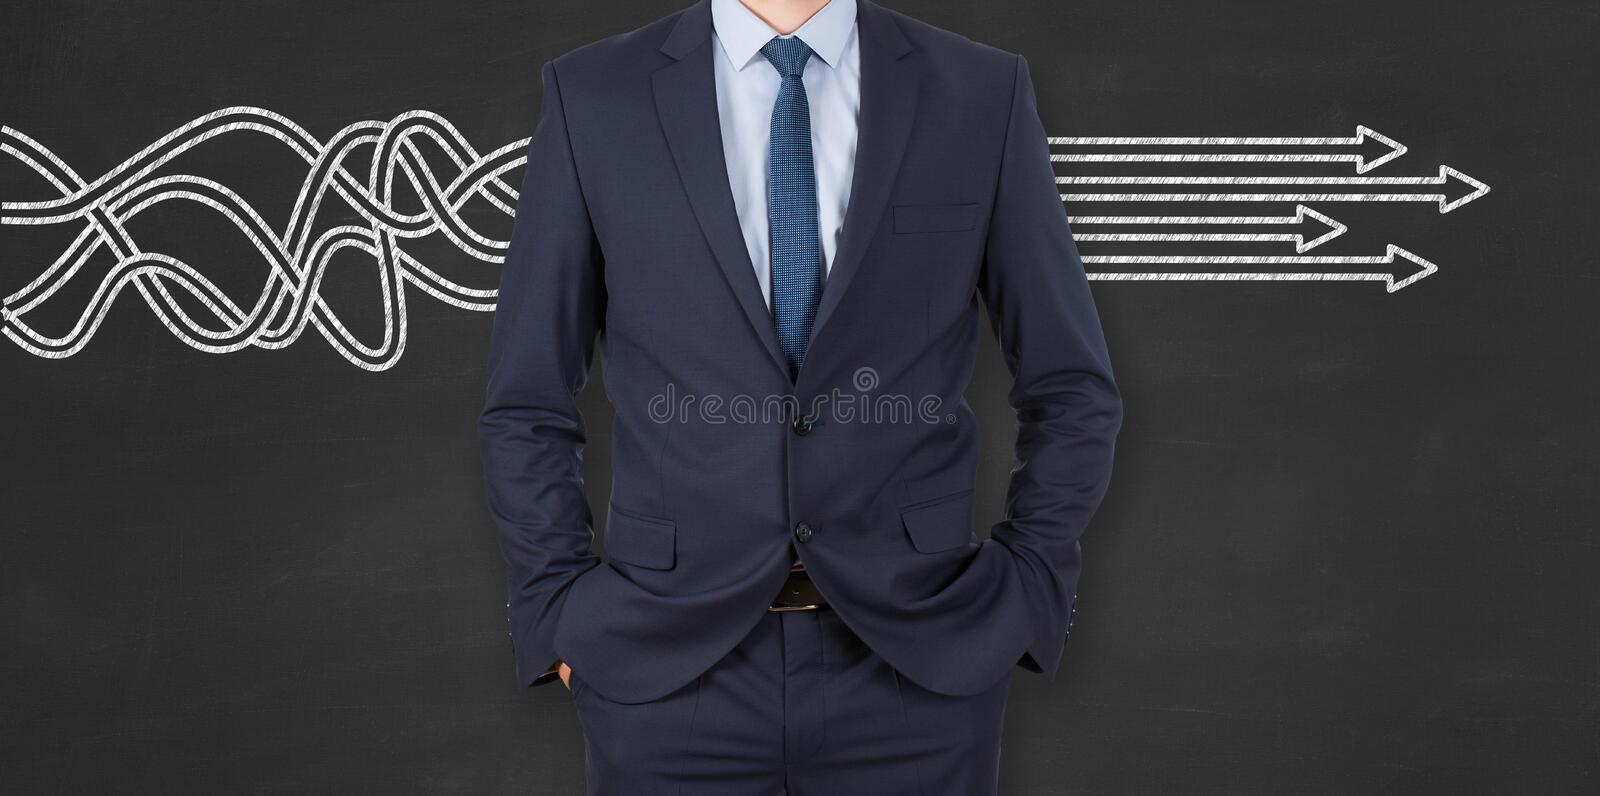 Business Person Solution Concept on Chalkboard Background royalty free stock photos